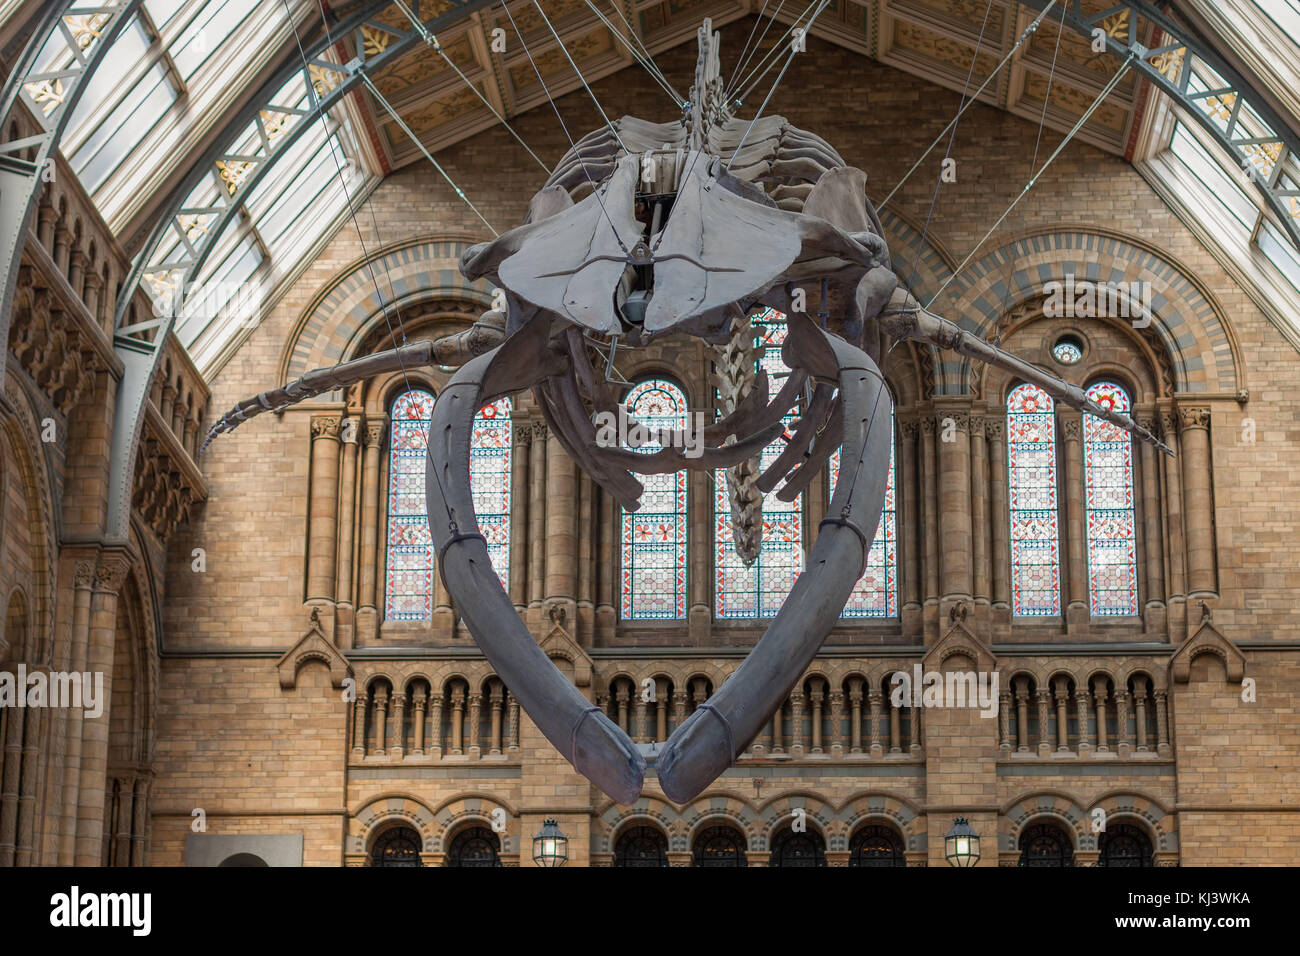 The Natural History Museum, London-September 6,2017: The blue whale skeleton located in the main hall of The Natural - Stock Image